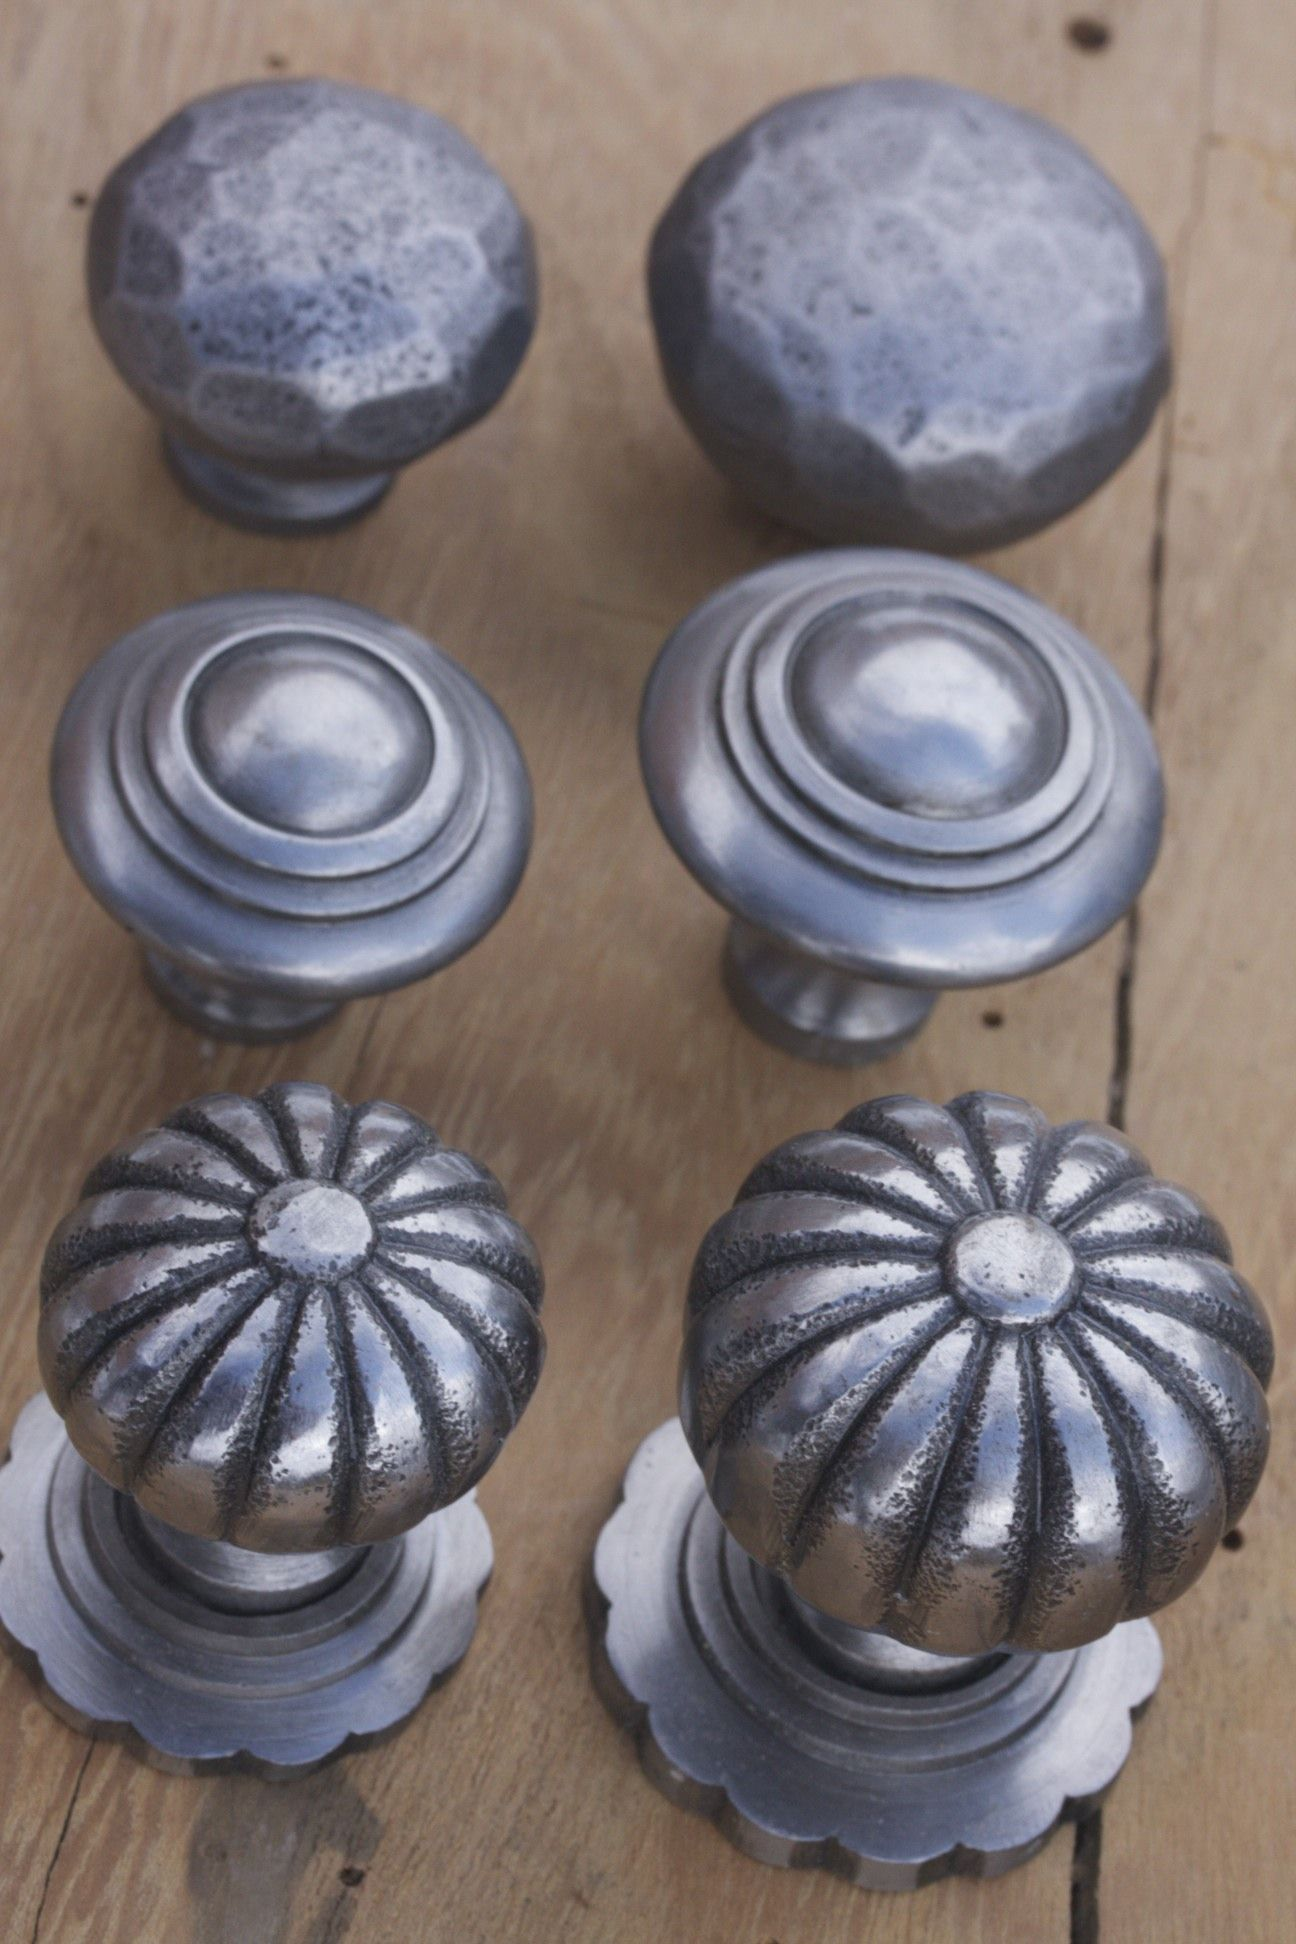 hardware knob queen anne cupboard cabinet knobs zoo primalite reeded fittings